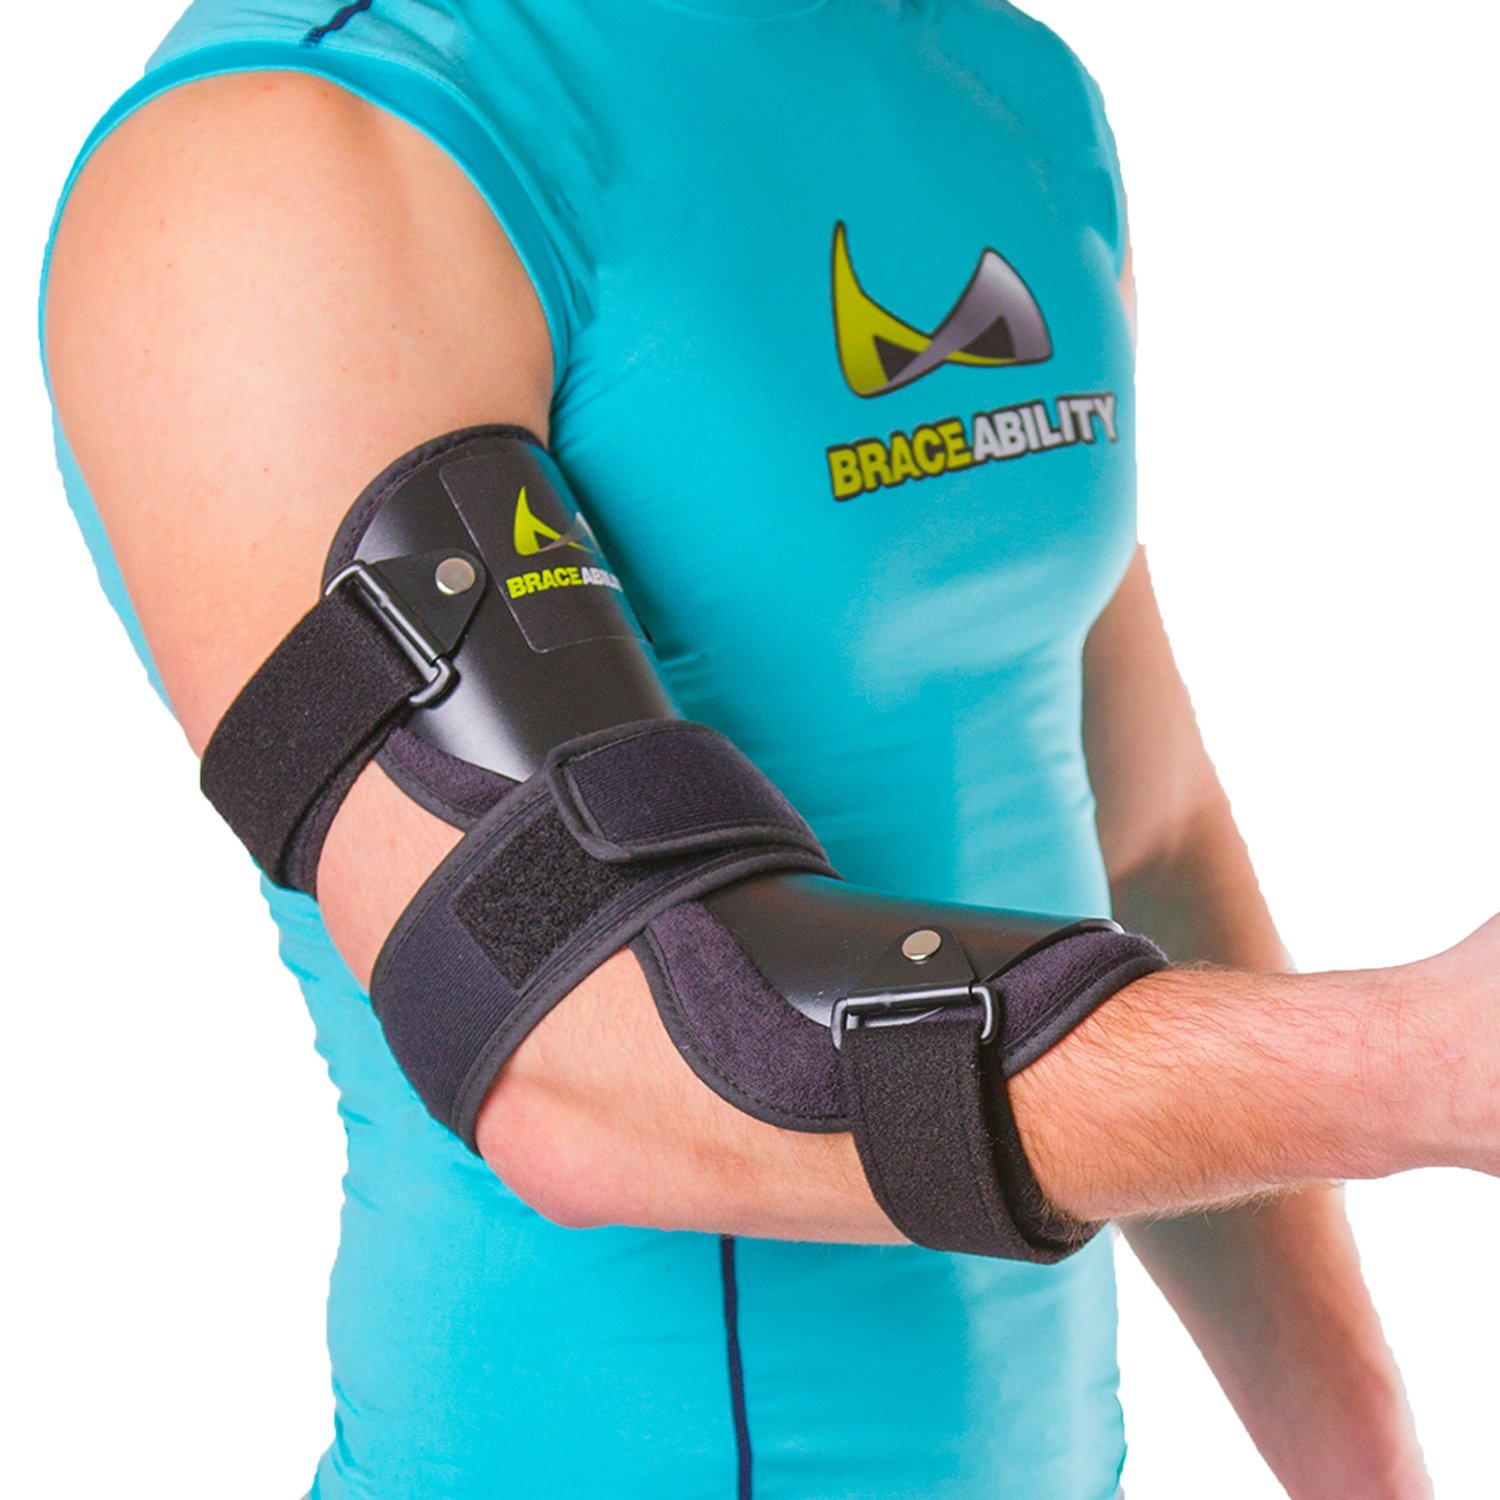 Amazon Braceability Cubital Tunnel Syndrome Elbow Brace